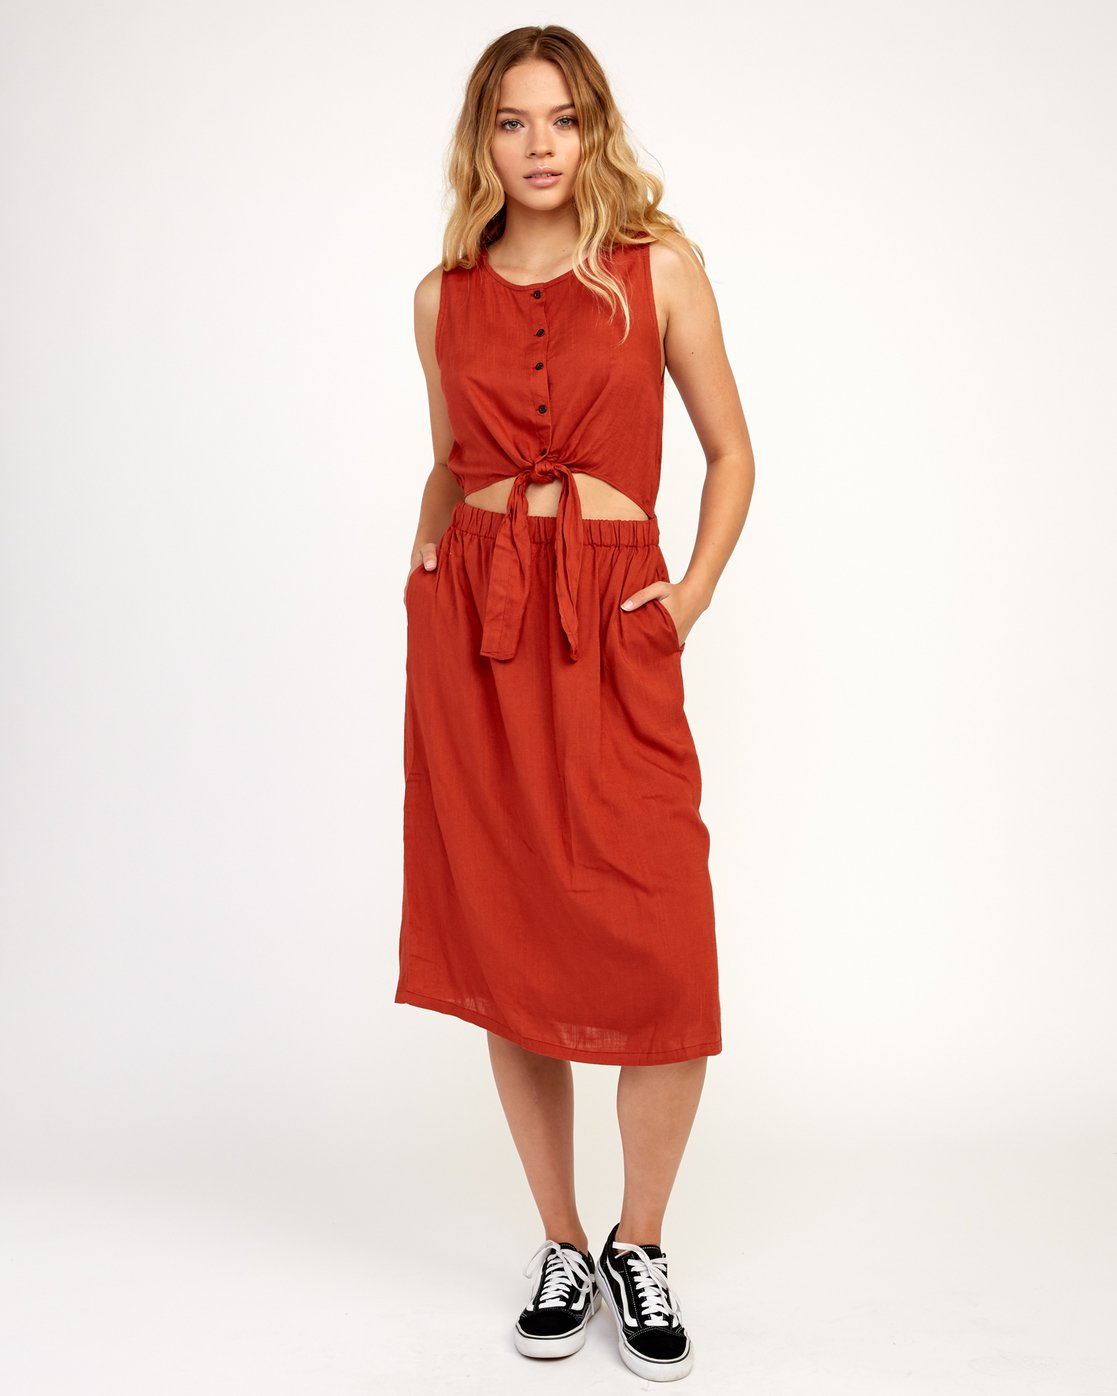 0 Arizona Woven Midi Dress Red WD16TRAR RVCA